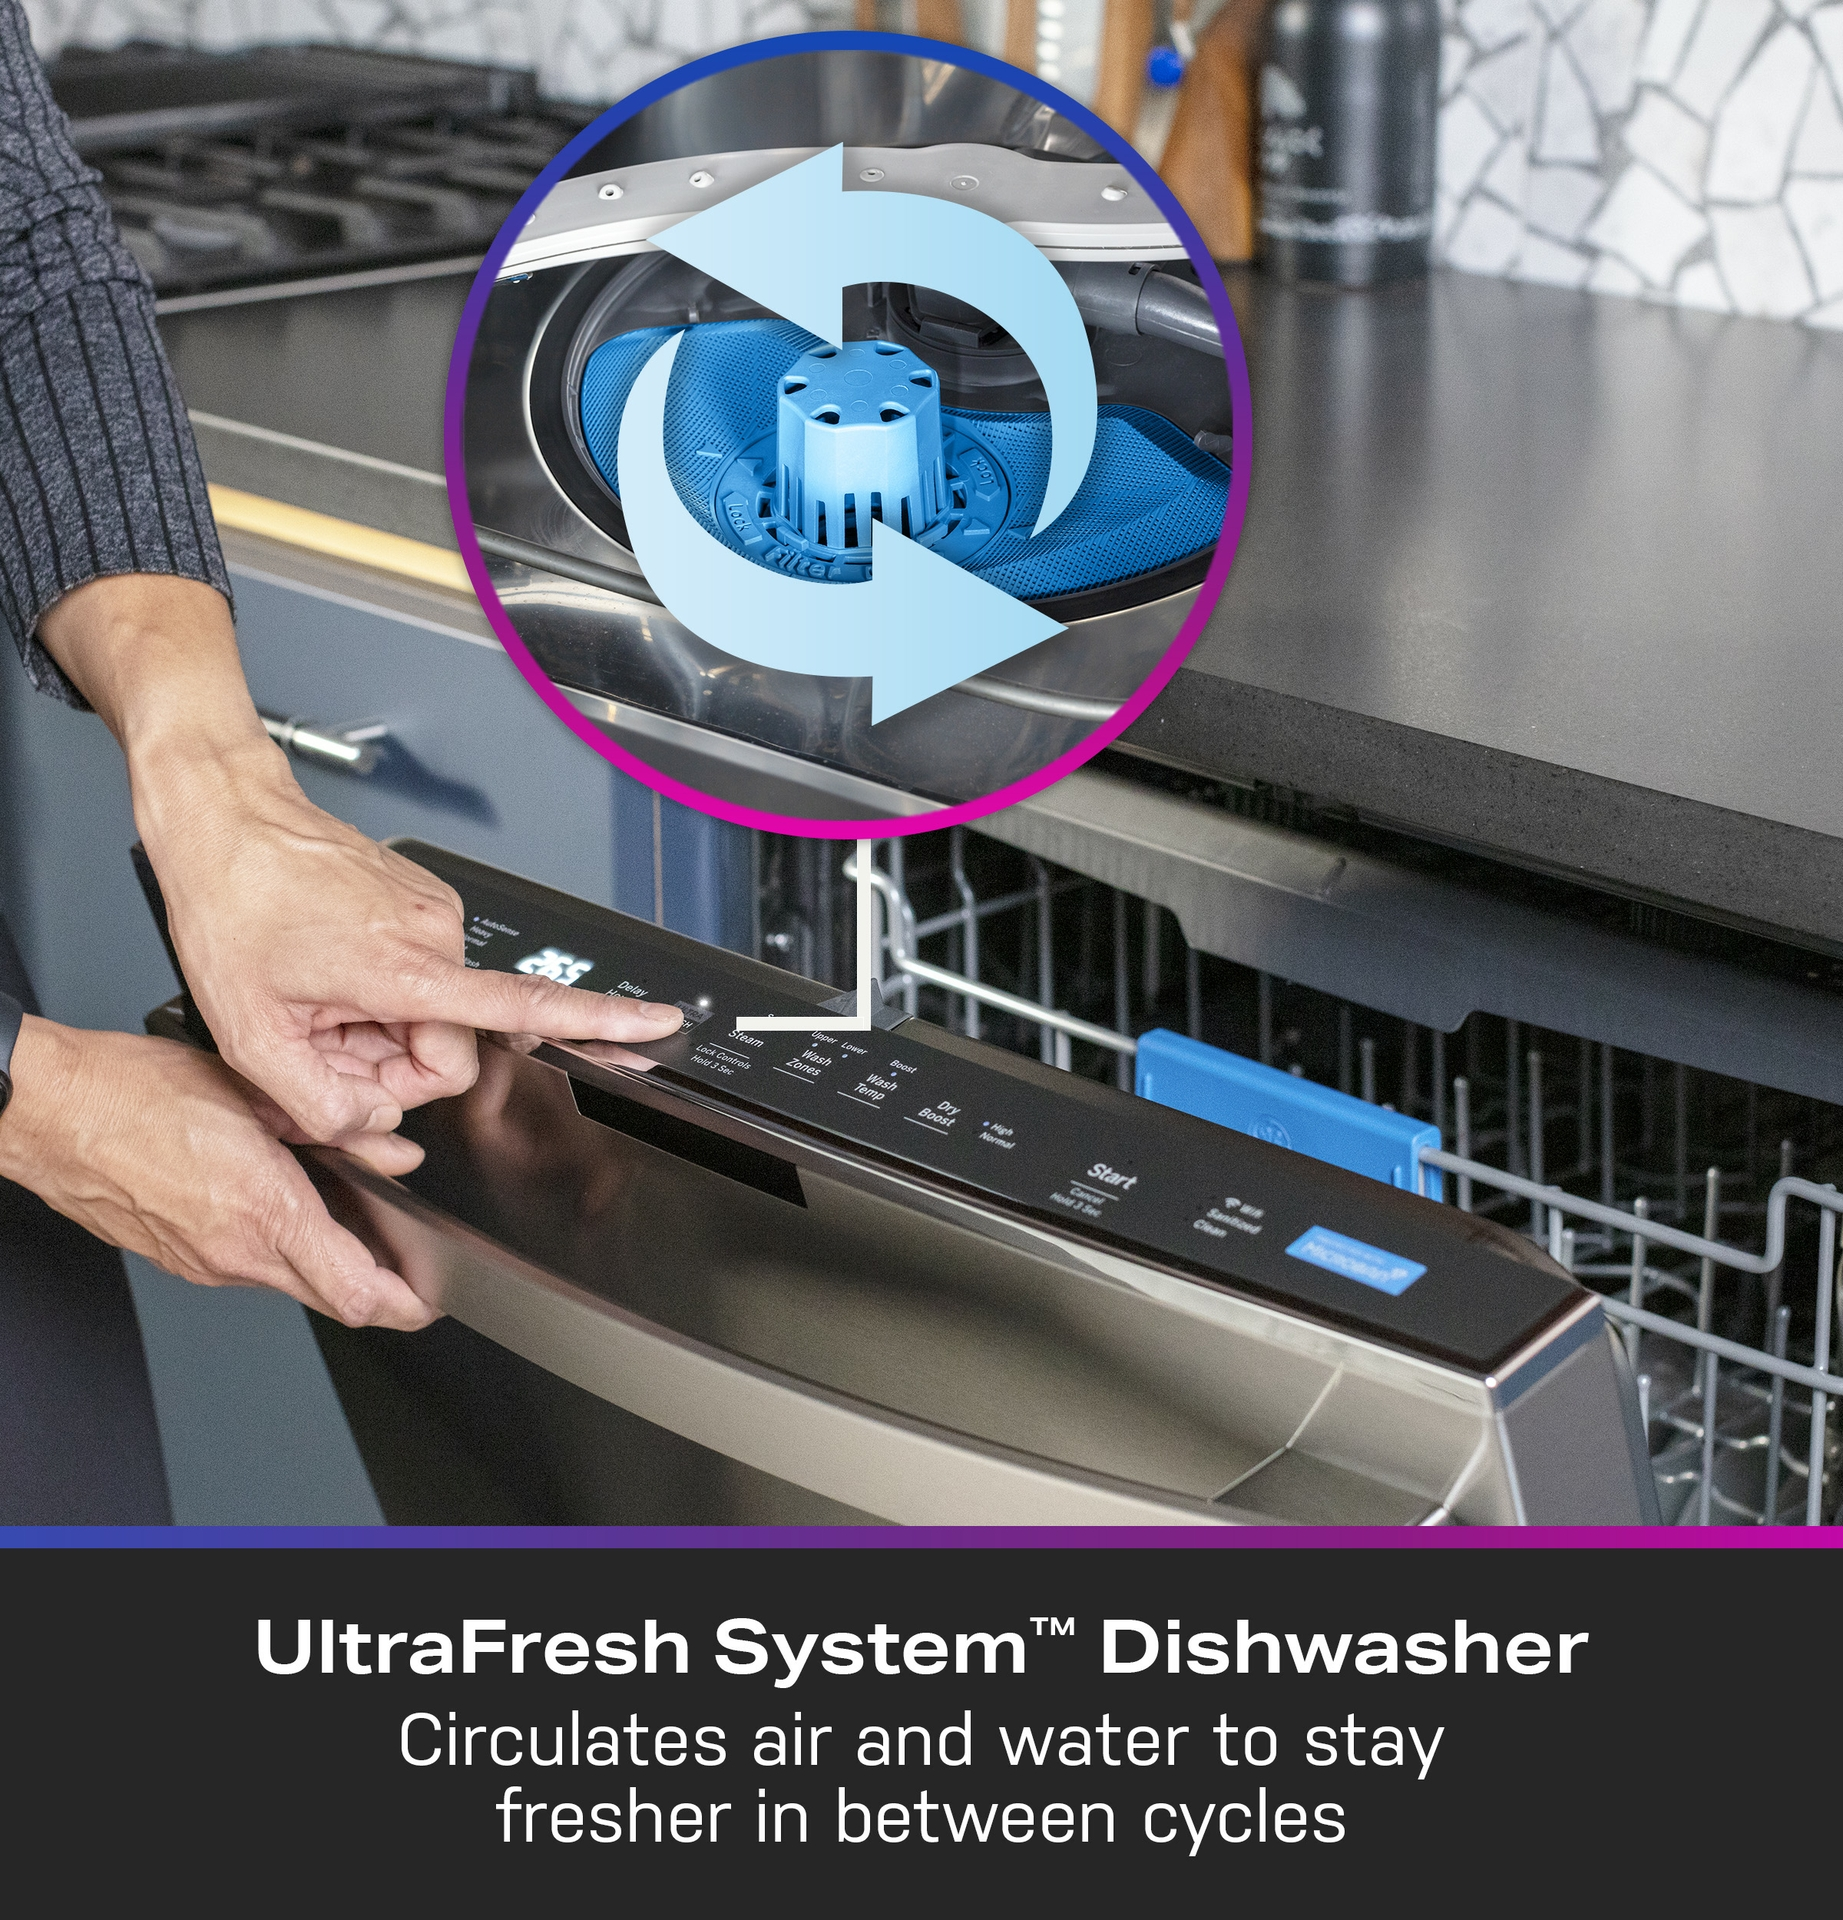 The UltraFresh System™ helps to stop the causes of odor in the GE Profile UltraFresh System™ Dishwasher with Microban® Antimicrobial Technology